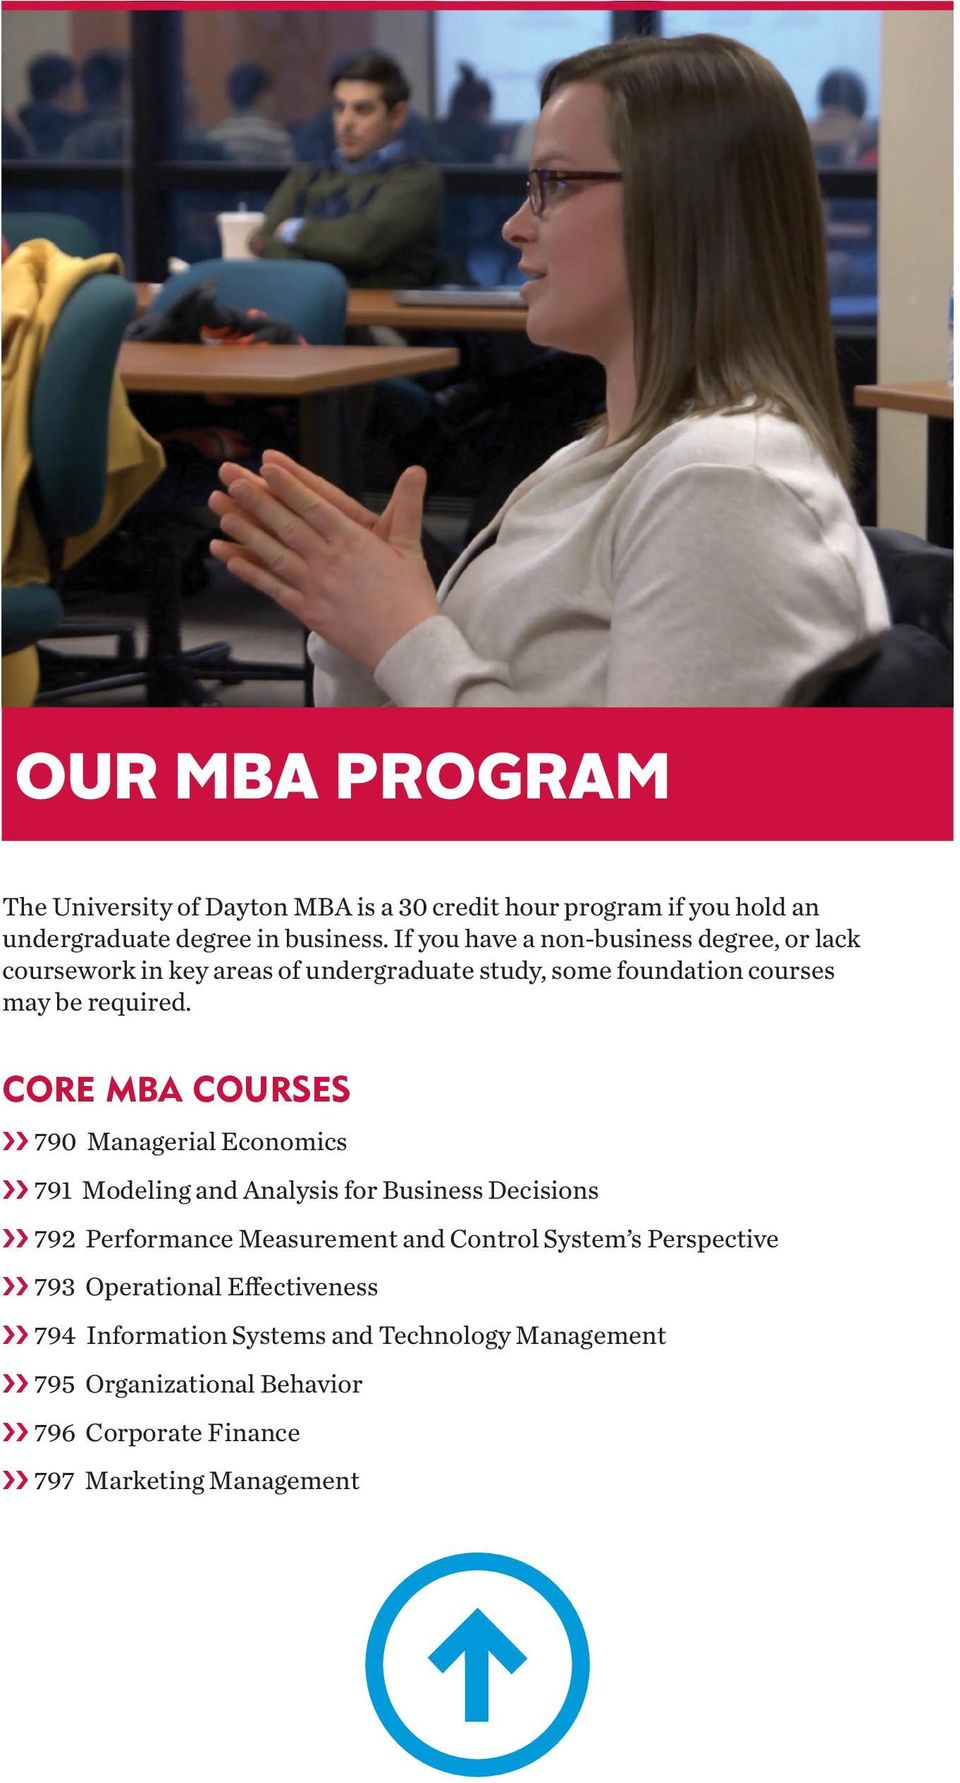 CORE MBA COURSES 790 Managerial Economics 791 Modeling and Analysis for Business Decisions 792 Performance Measurement and Control System s